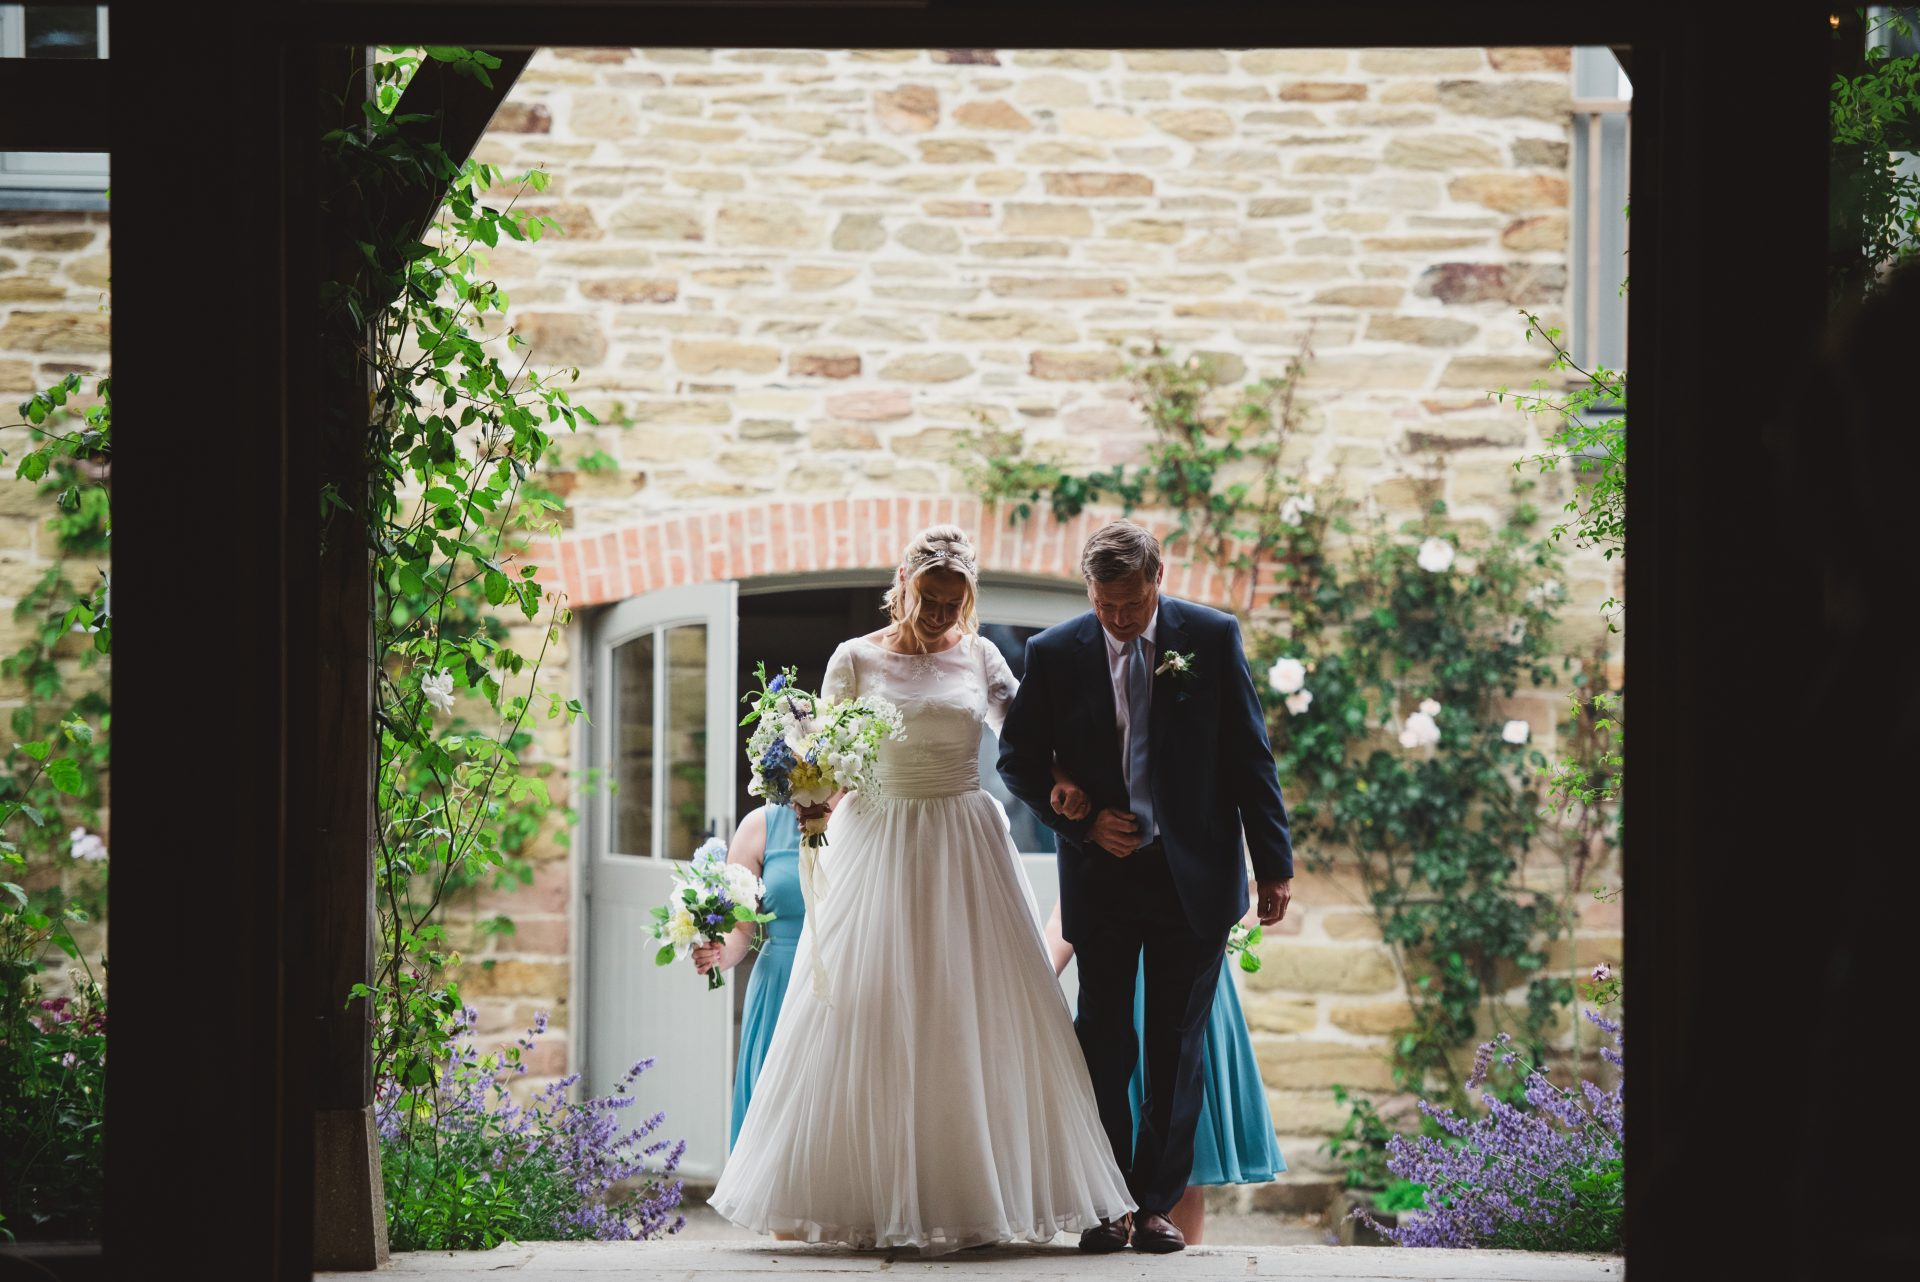 Nancarrow Farm wedding - Stewart Girvan Photography